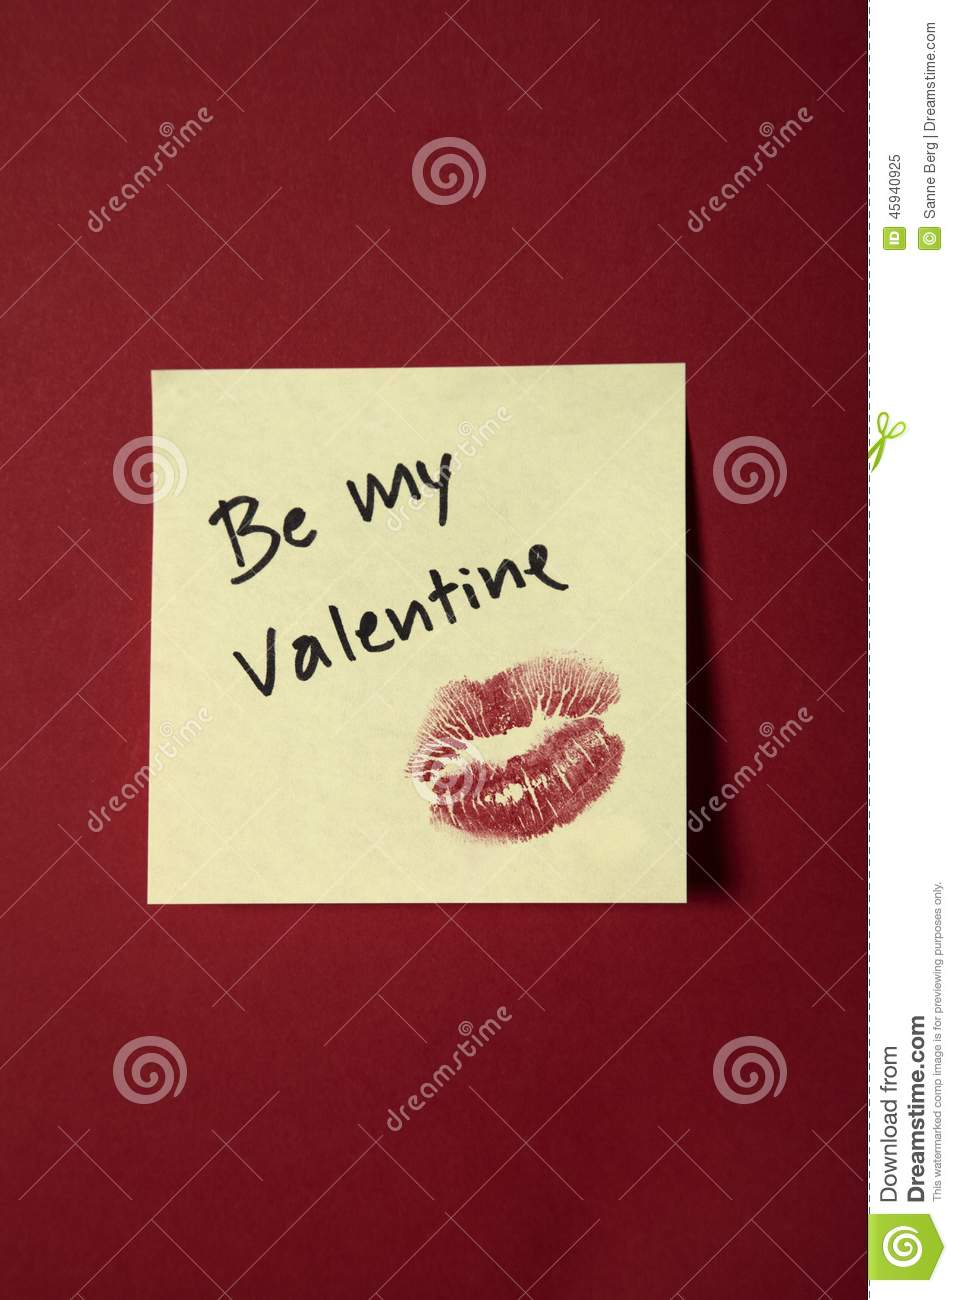 Be My Valentine Note On Red Wall Stock Image - Image of photography ...